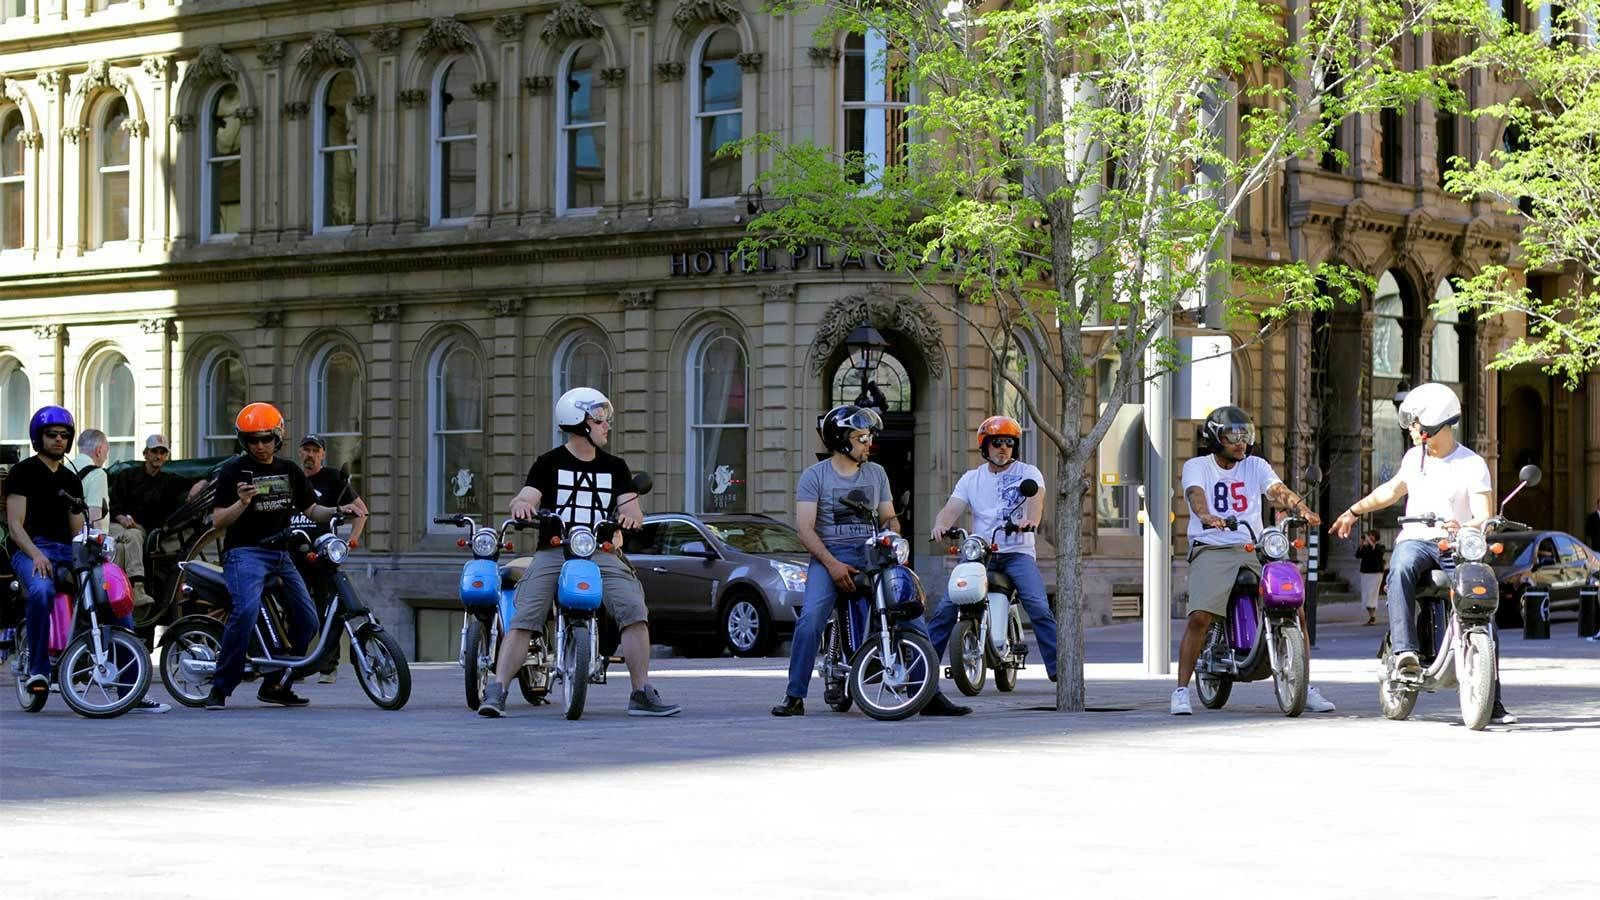 a group of scooter riders in an intersection in Montreal